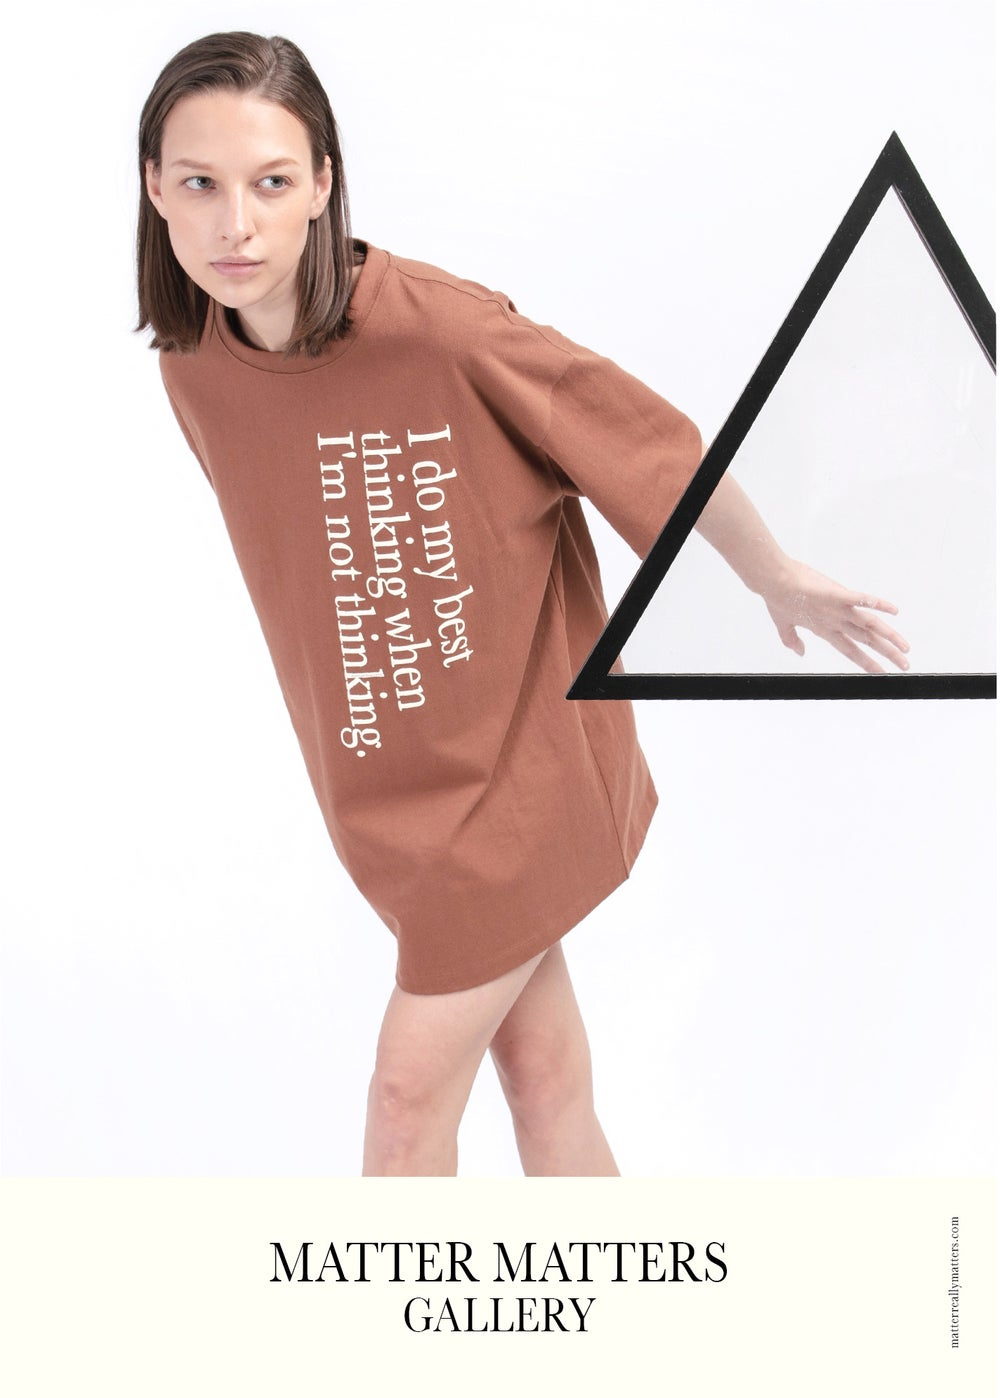 Matter Matters Oversized Tee / Best thinking - Brown